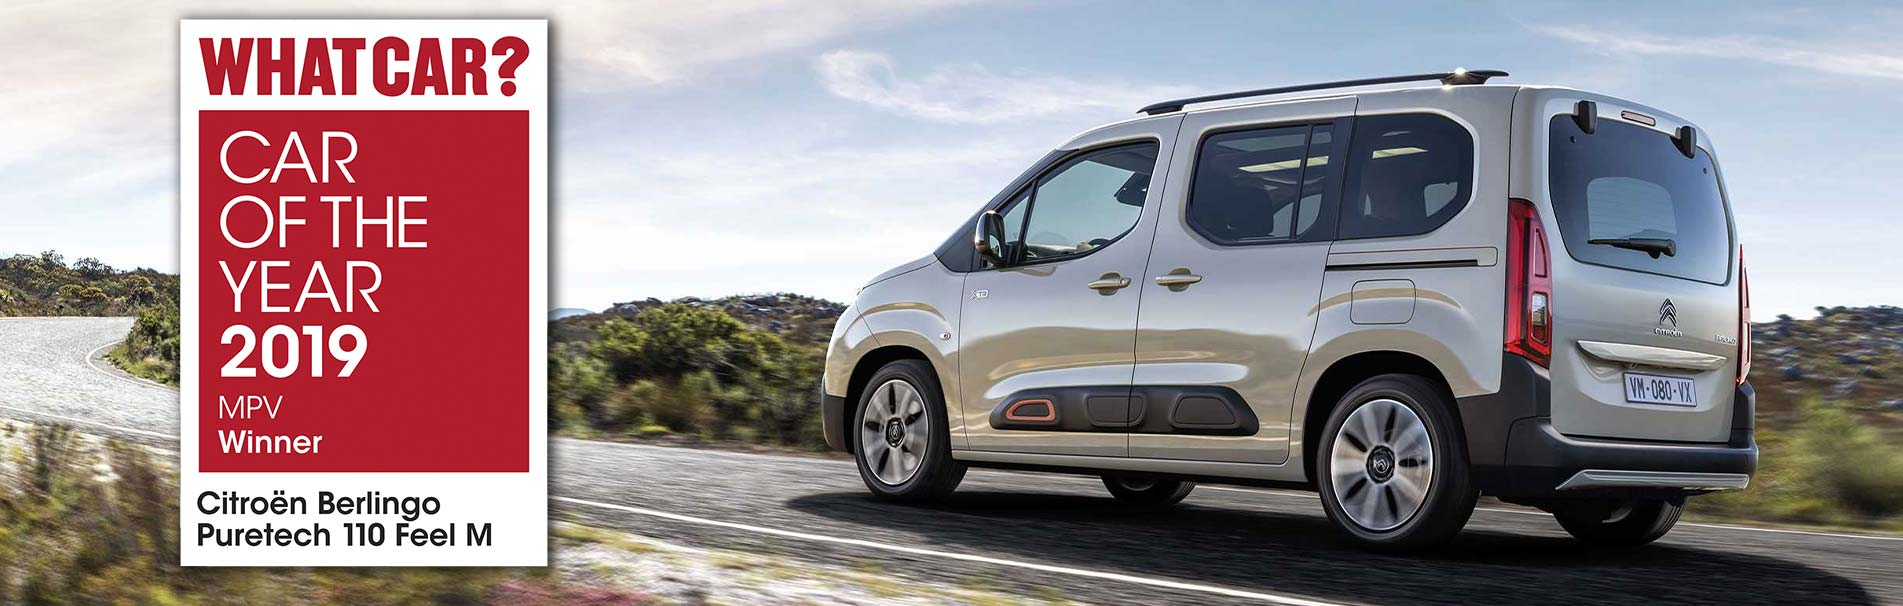 citroen-berlingo-mpv-wins-what-car-of-the-year-2019-awards-sli